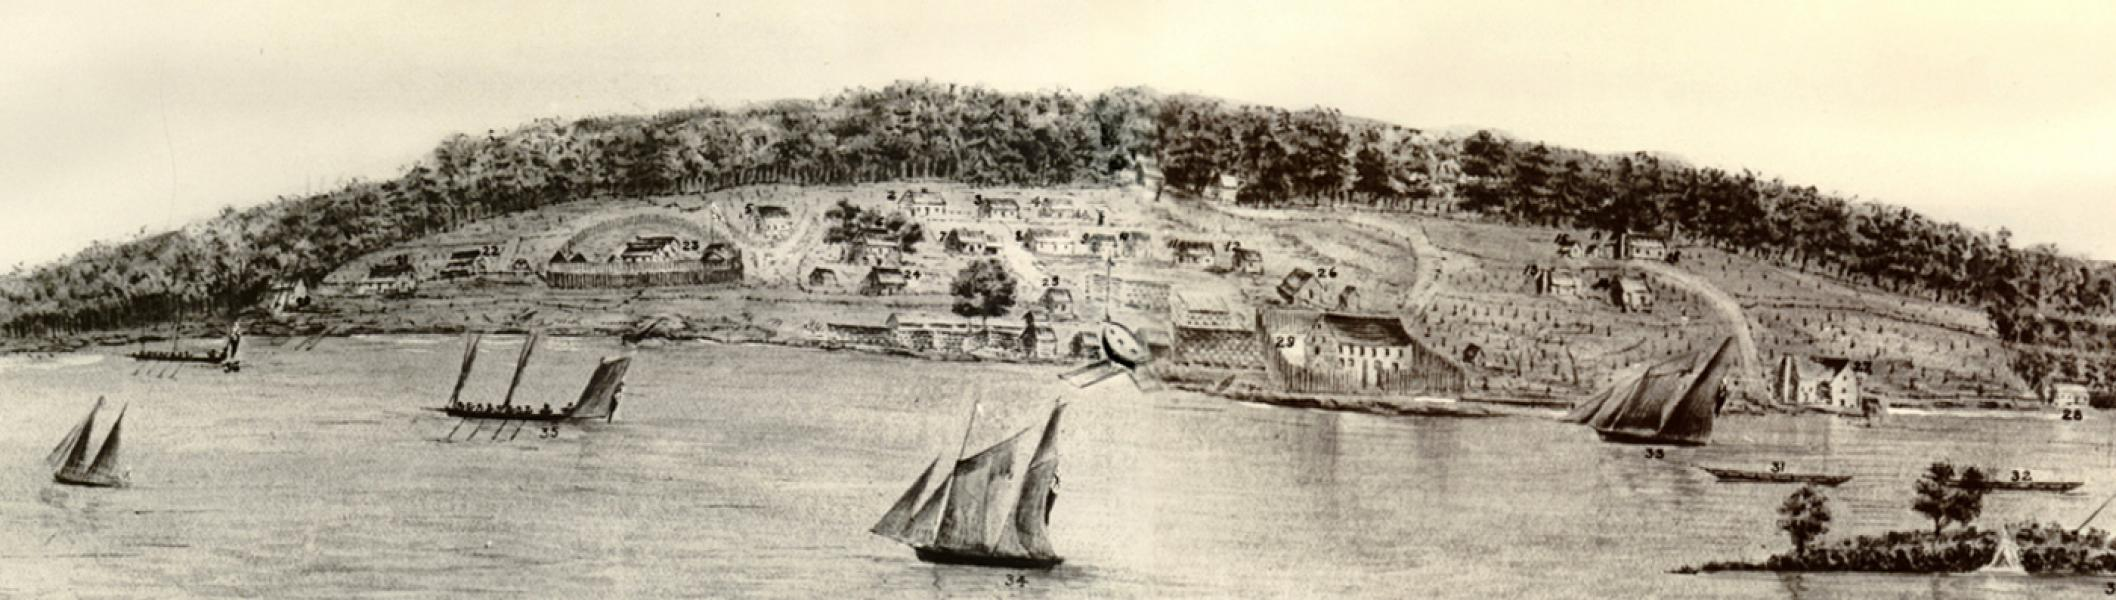 Engraving of Penetanguishine Military Base and ships sailing in harbour, 1818